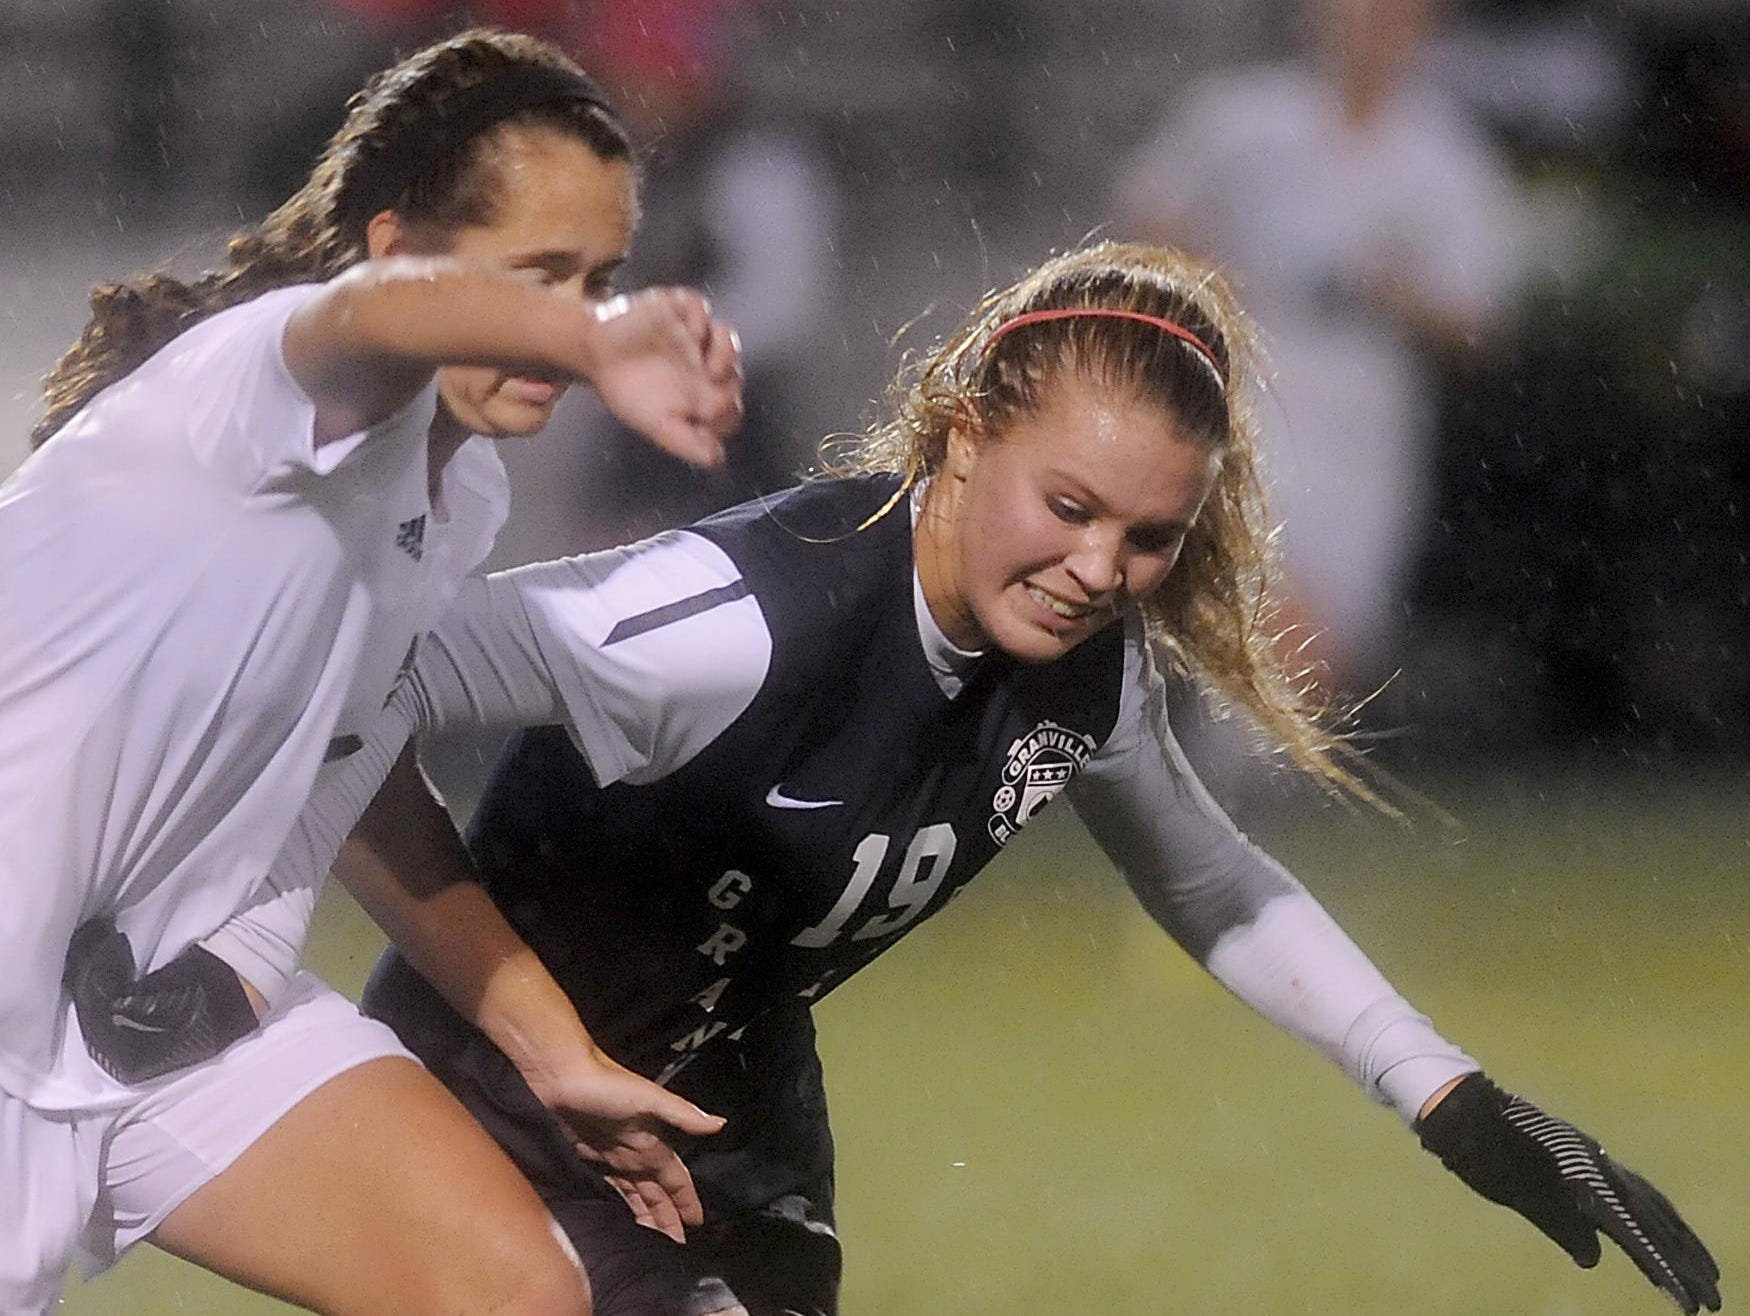 Granville midfielder Nikki Cox tries to get around McNicholas defender Michaela Shepherd during the Division II state semifinal game at West Carrollton High School last November. The Blue Aces lost to the Rockets 3-1.